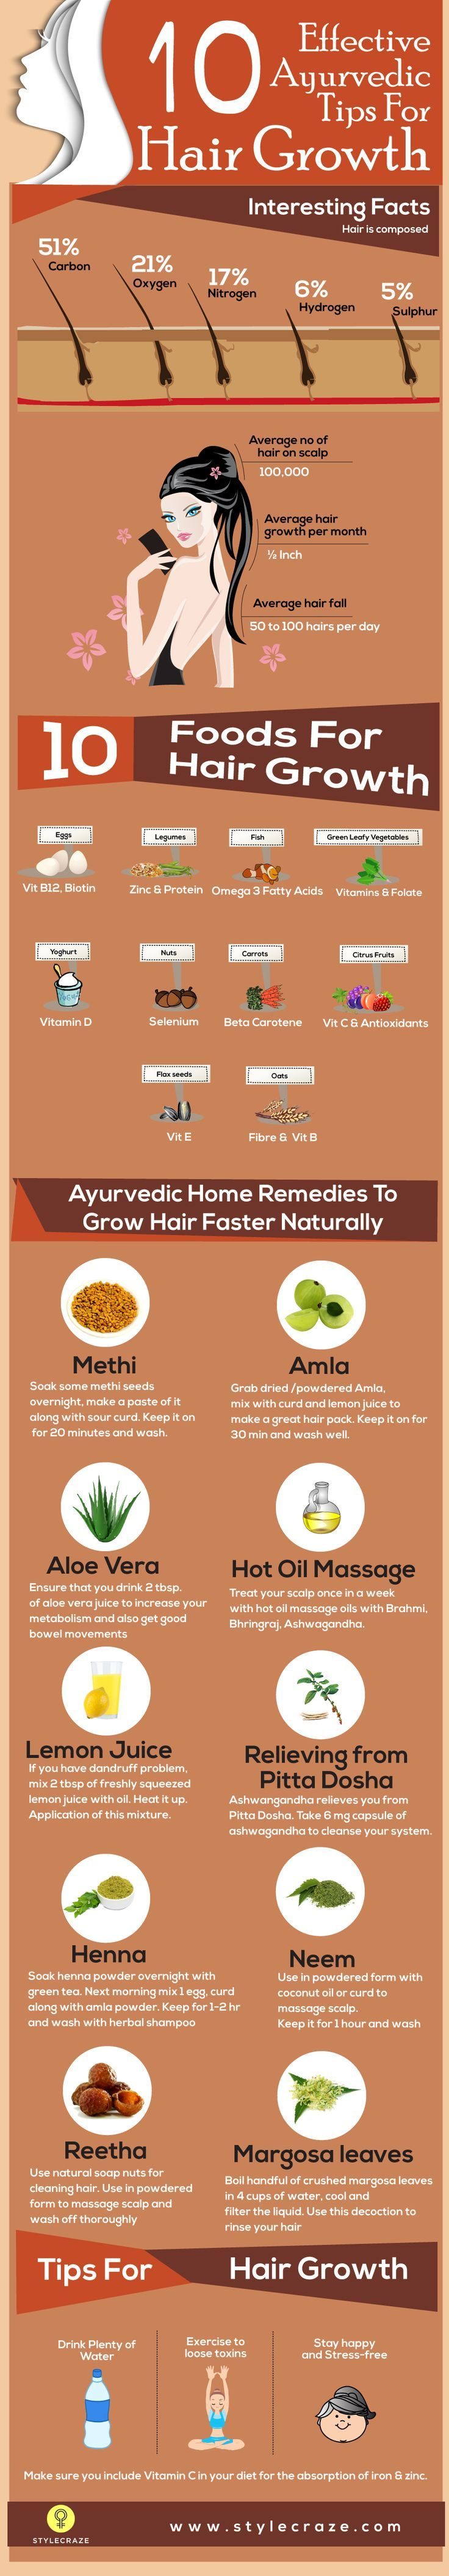 Nothing works better than natural ingredients for hair growth and care! Our expert Zinnia gives you 10 effective ayurvedic home remedies for ...